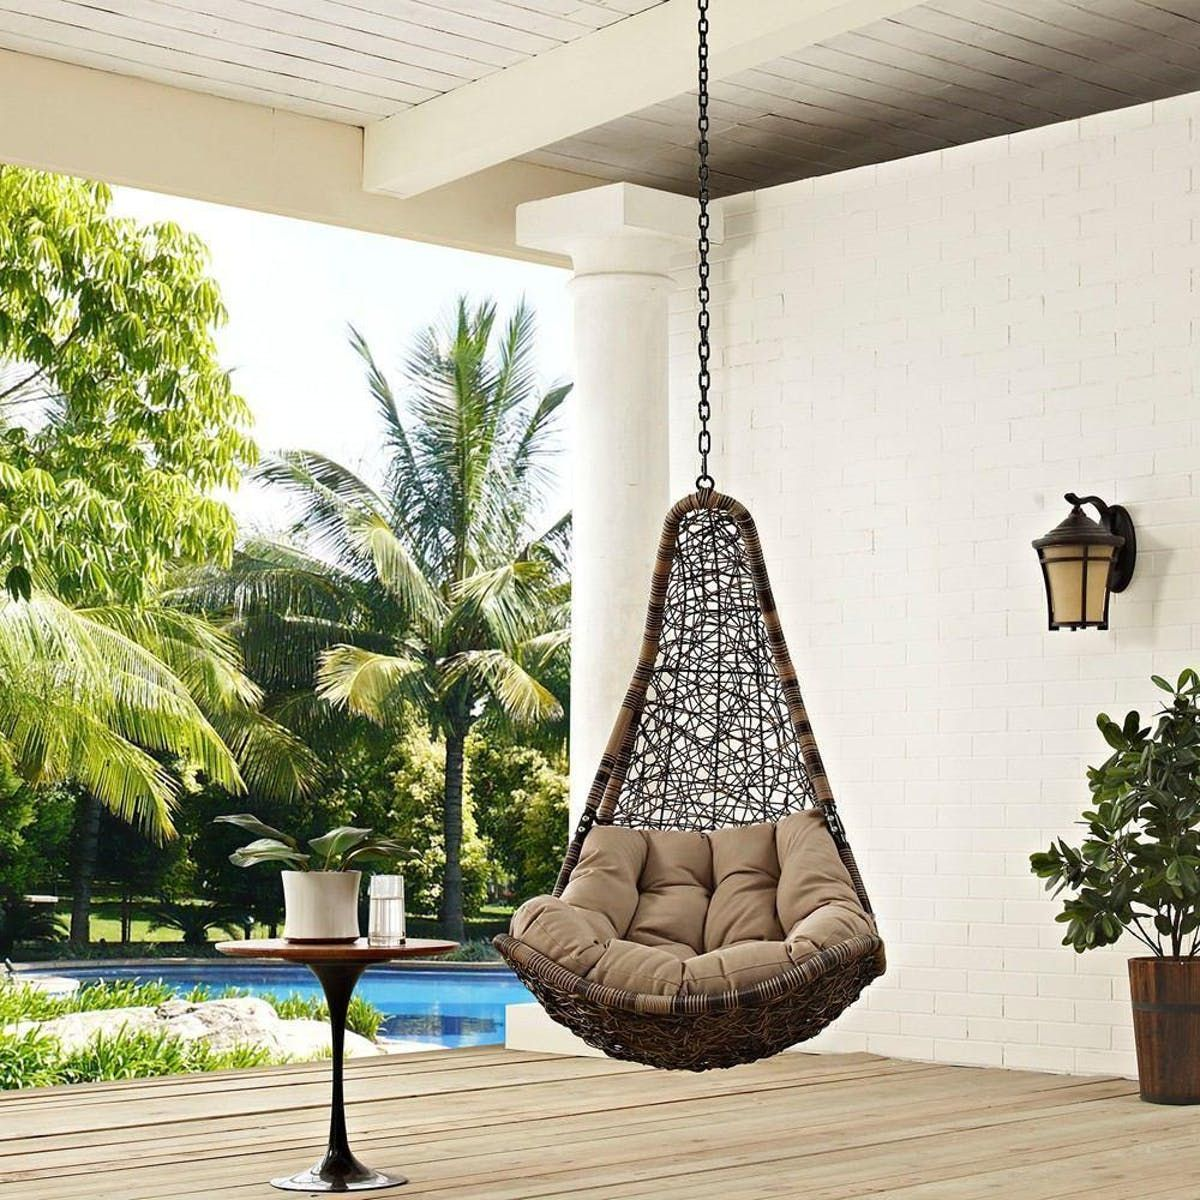 Modway Abate Outdoor Patio Swing Chair Without Stand in